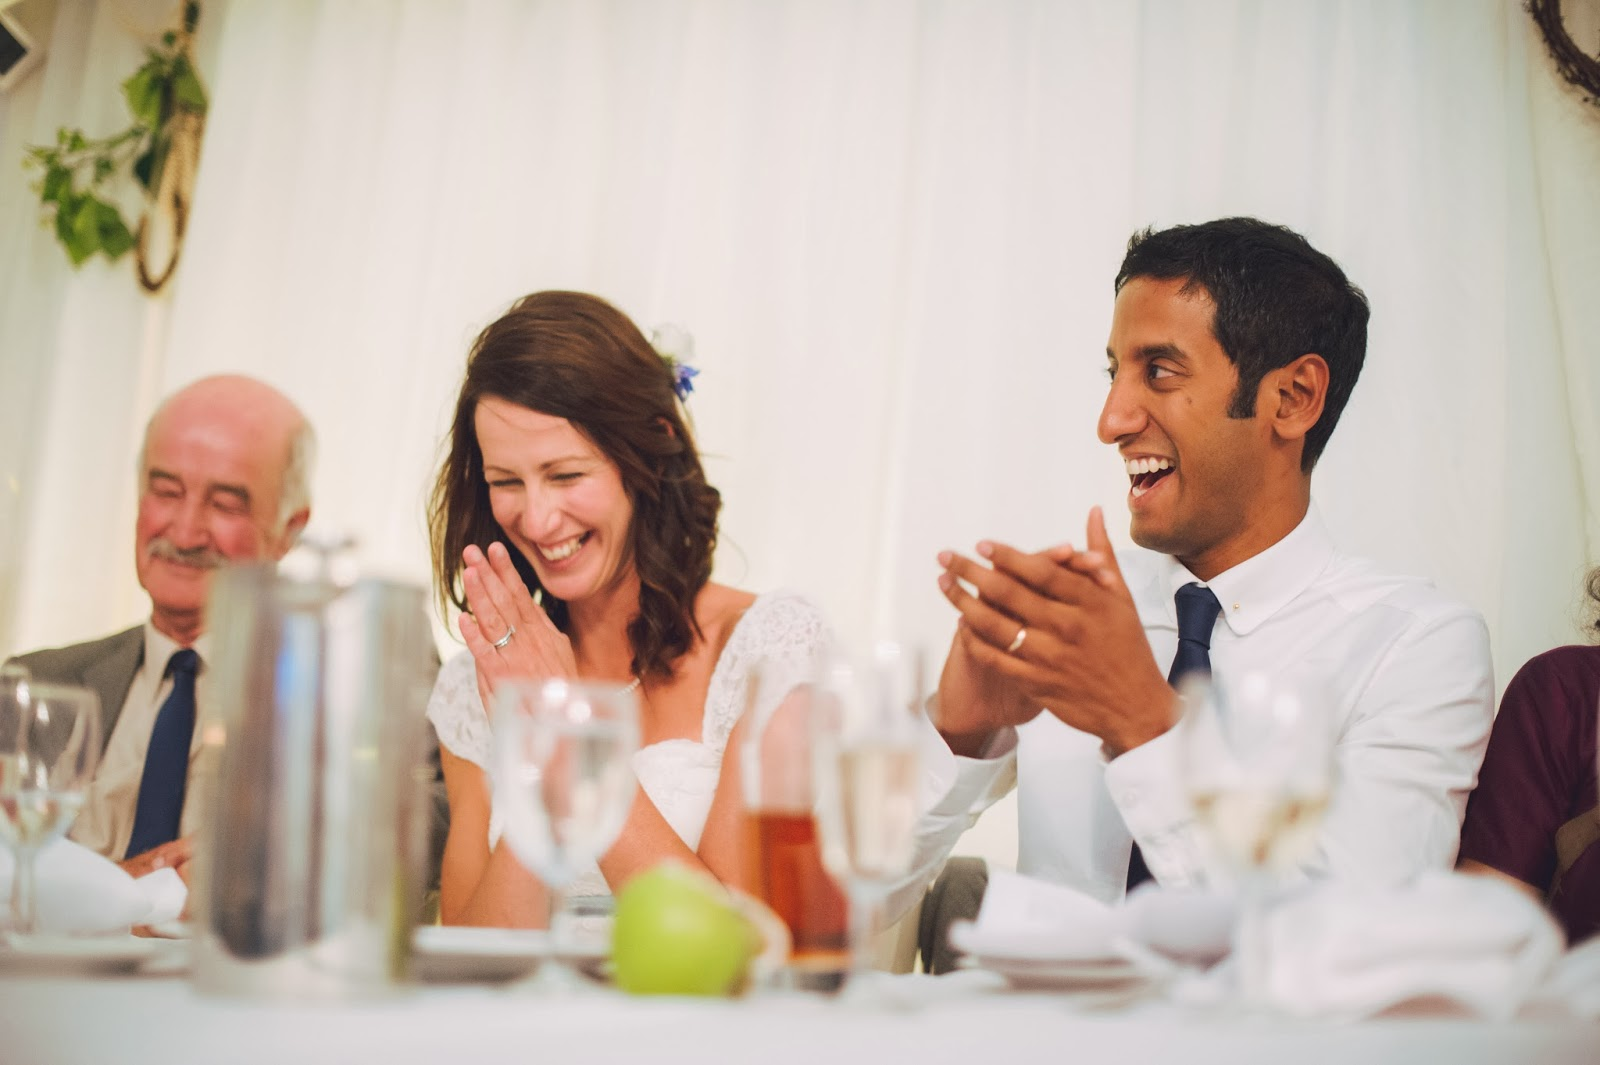 Reaction to speech at Quantock Lakes wedding